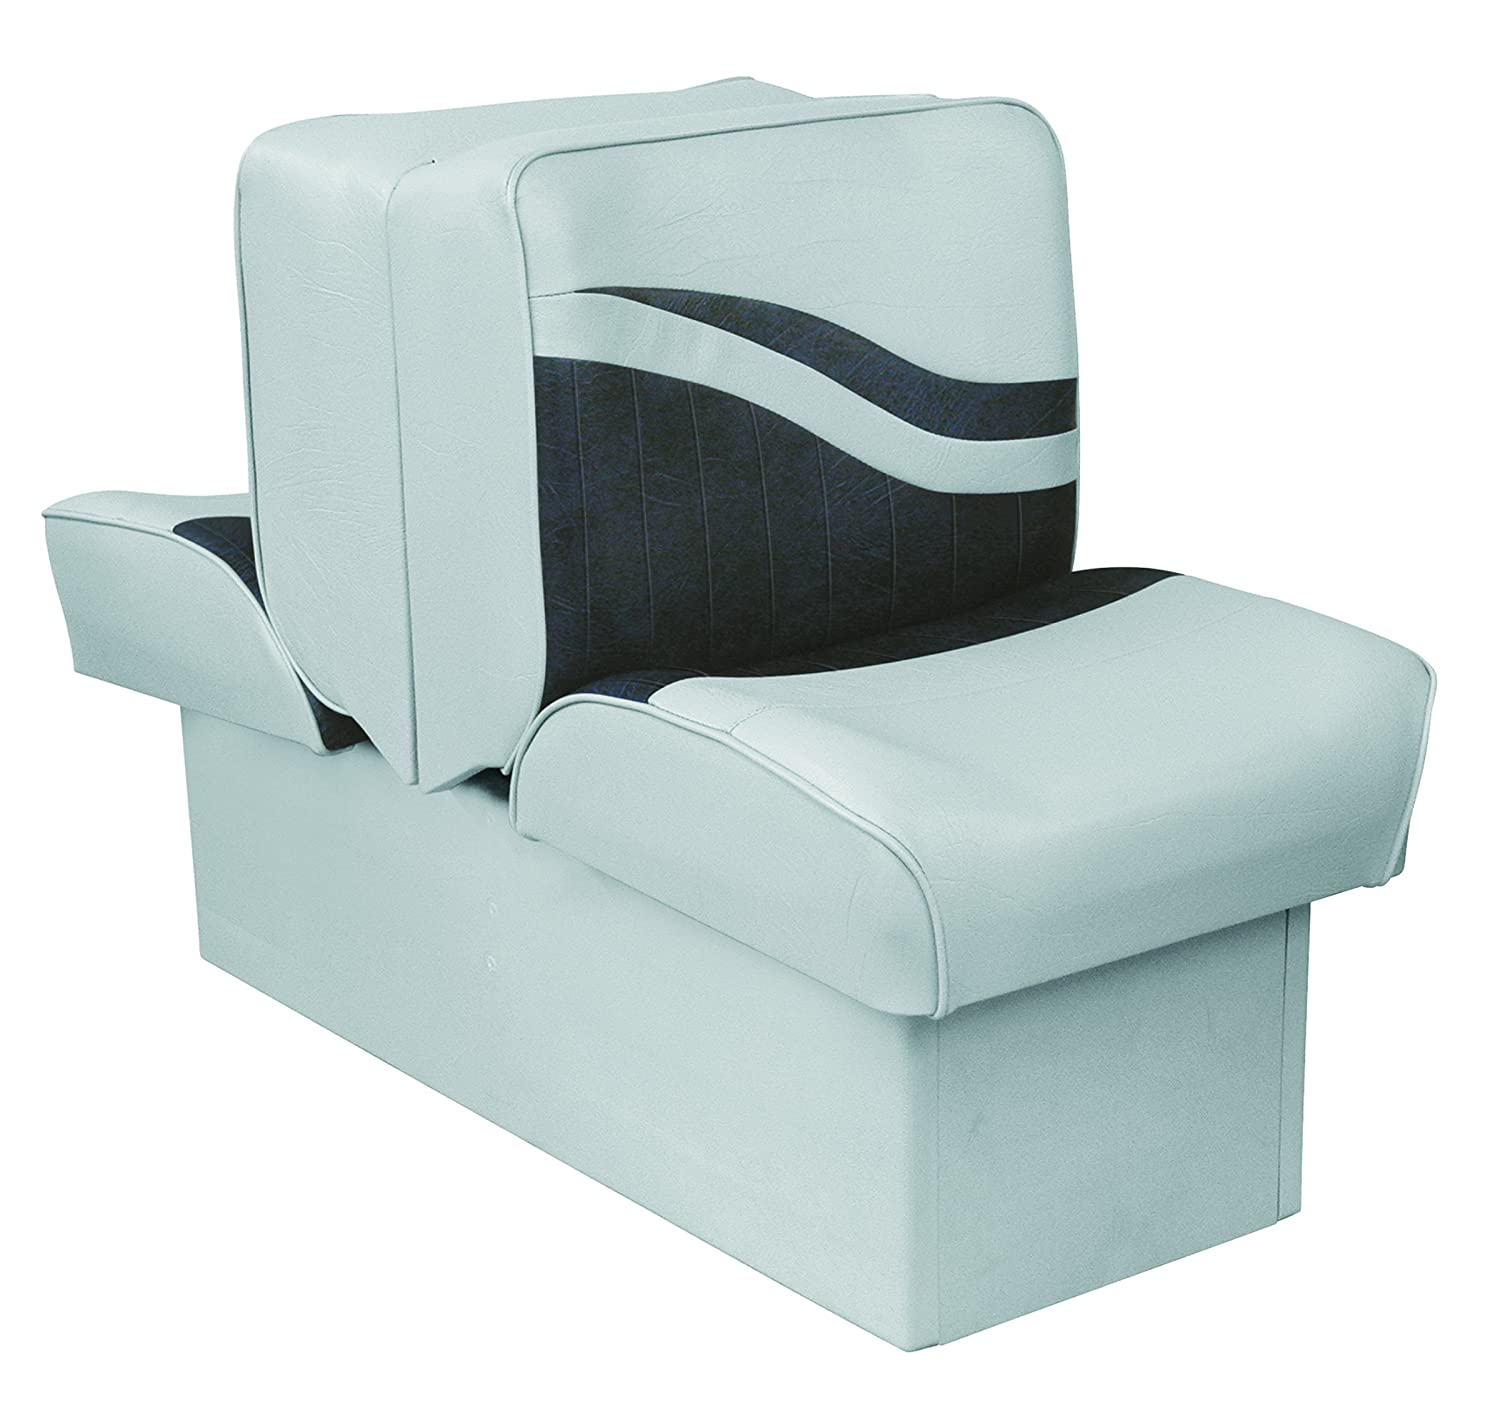 Contemporary Flip Down Seat Image Collection Bathtub